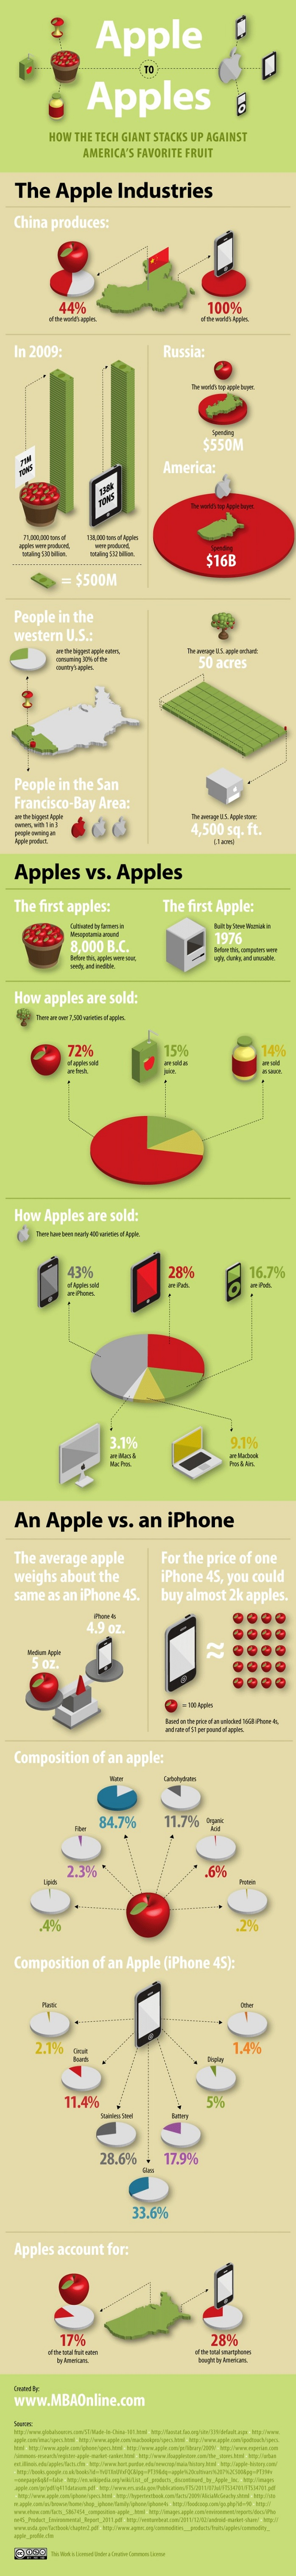 Apple Vs Apples: Which One Wins? [INFOGRAPHIC]